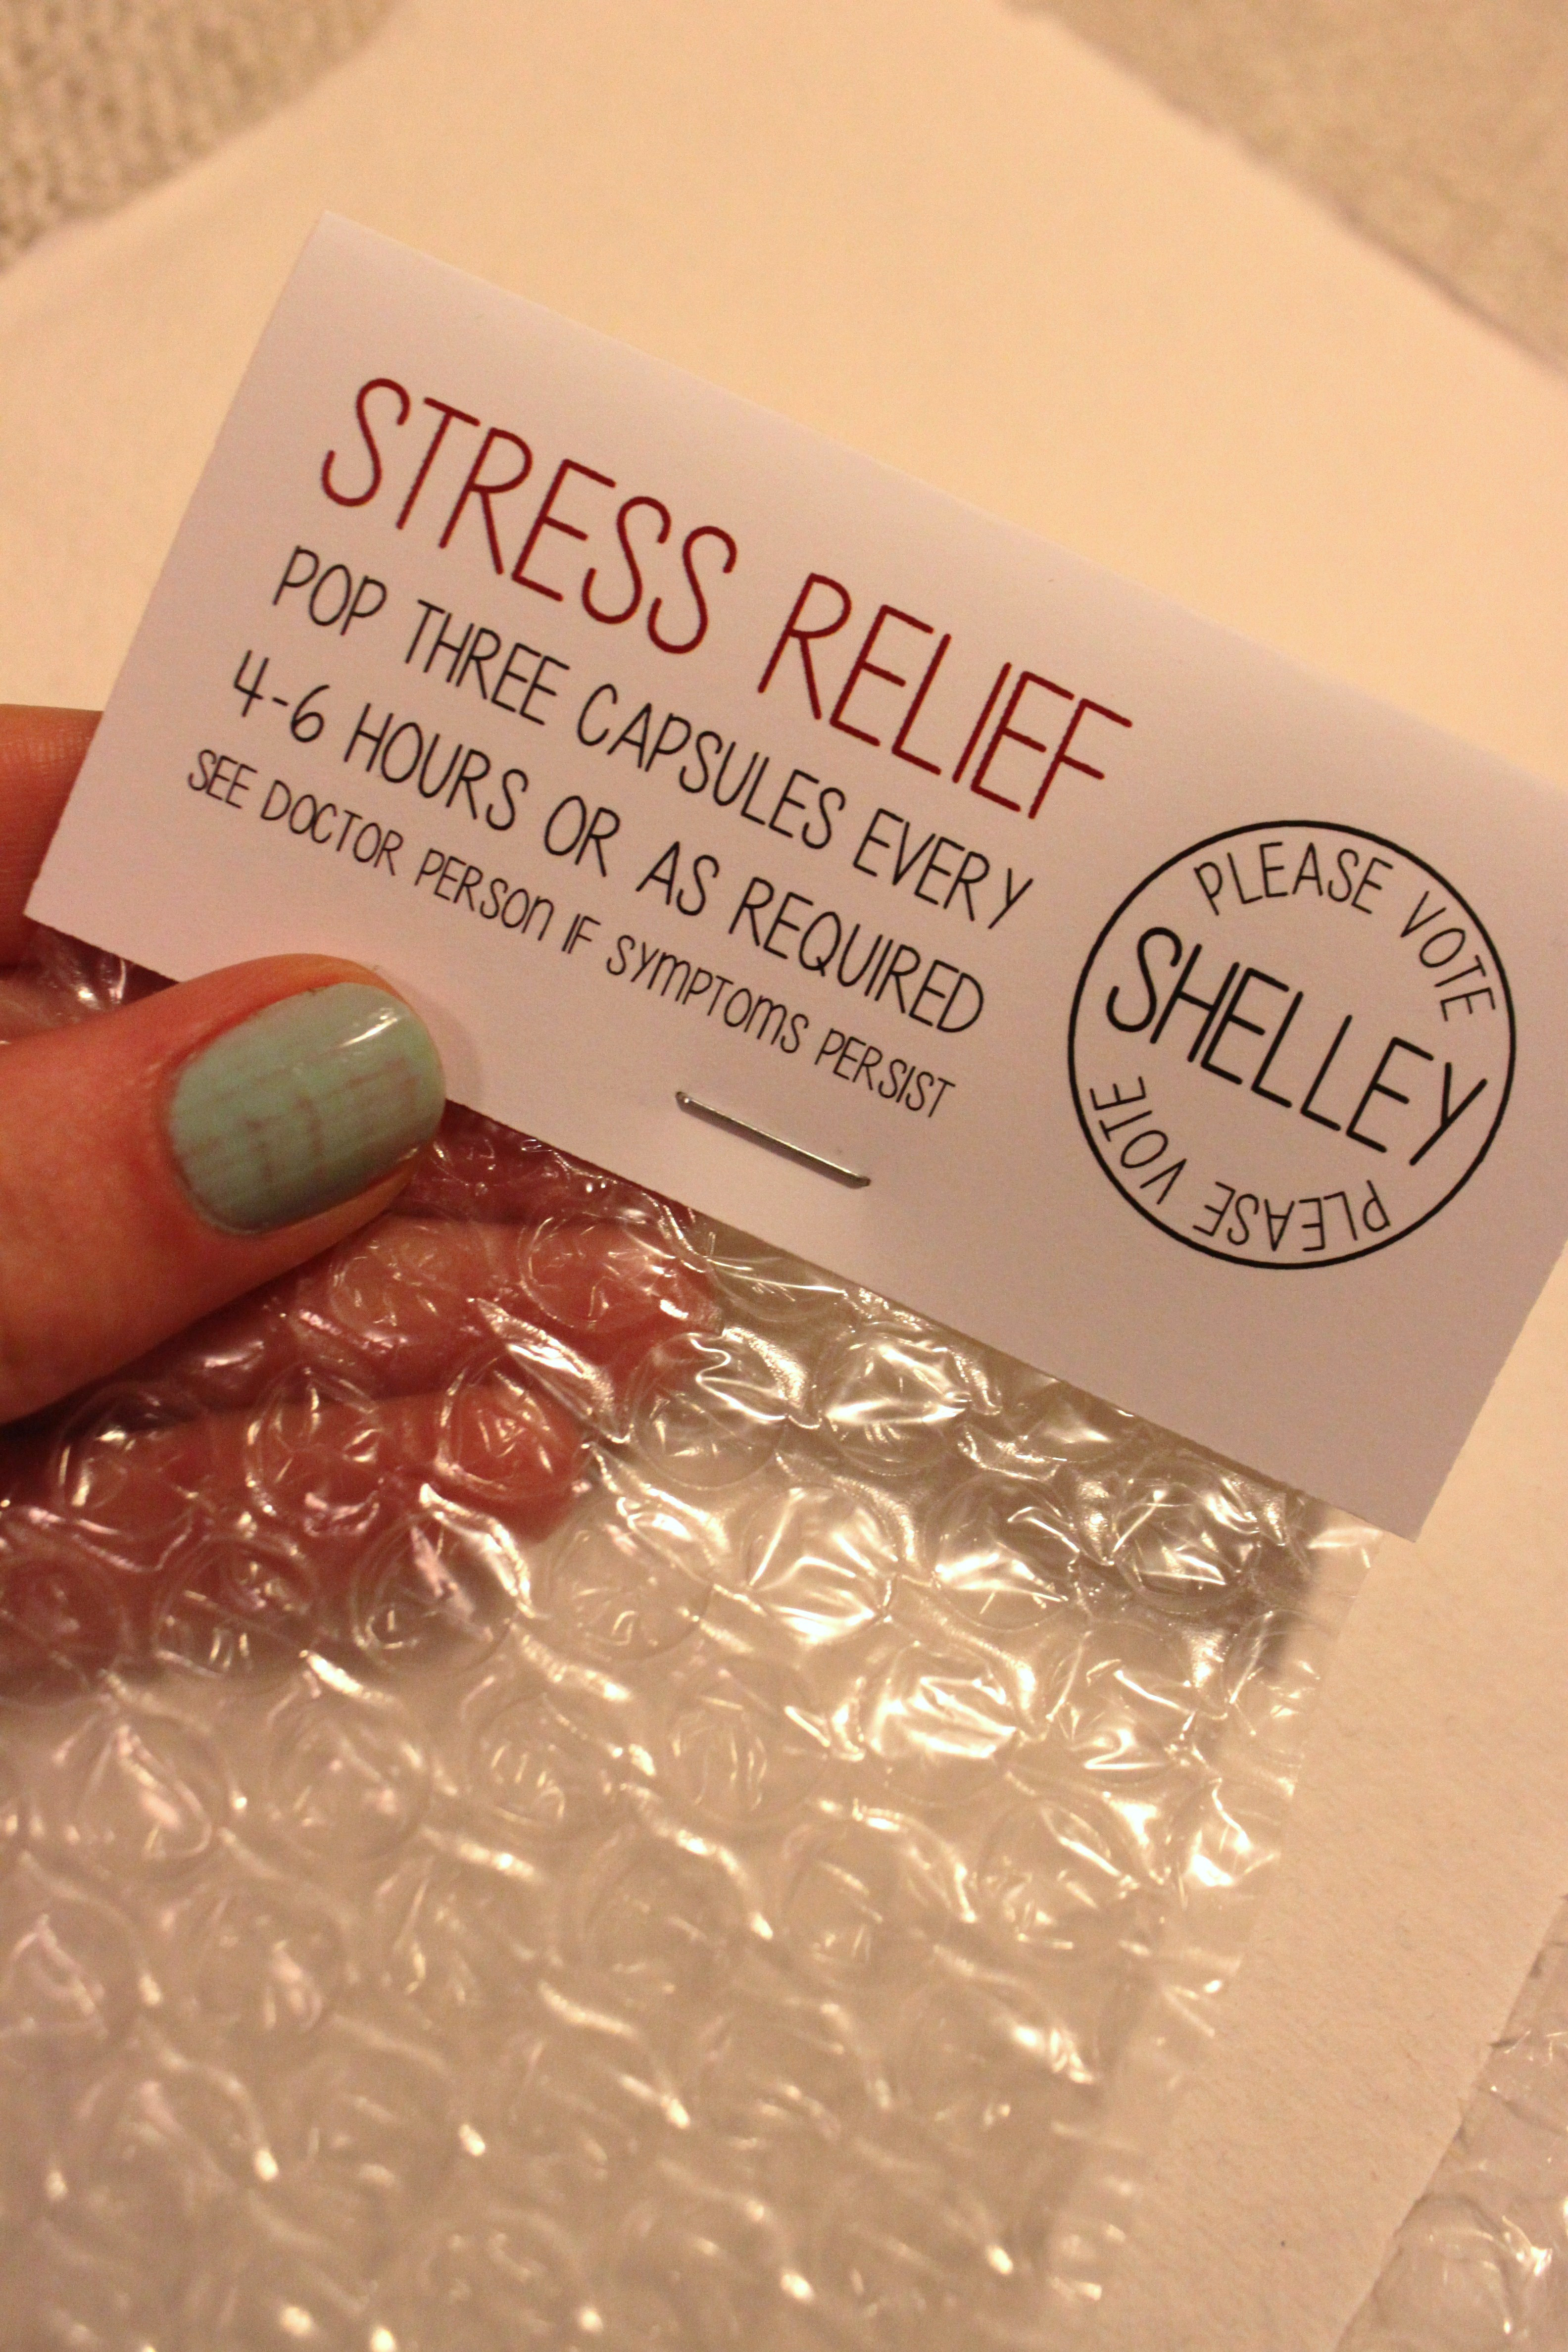 Best ideas about Stress Relief Gifts Unique Gift Ideas . Save or Pin Stress Relief Bubble Wrap Now.